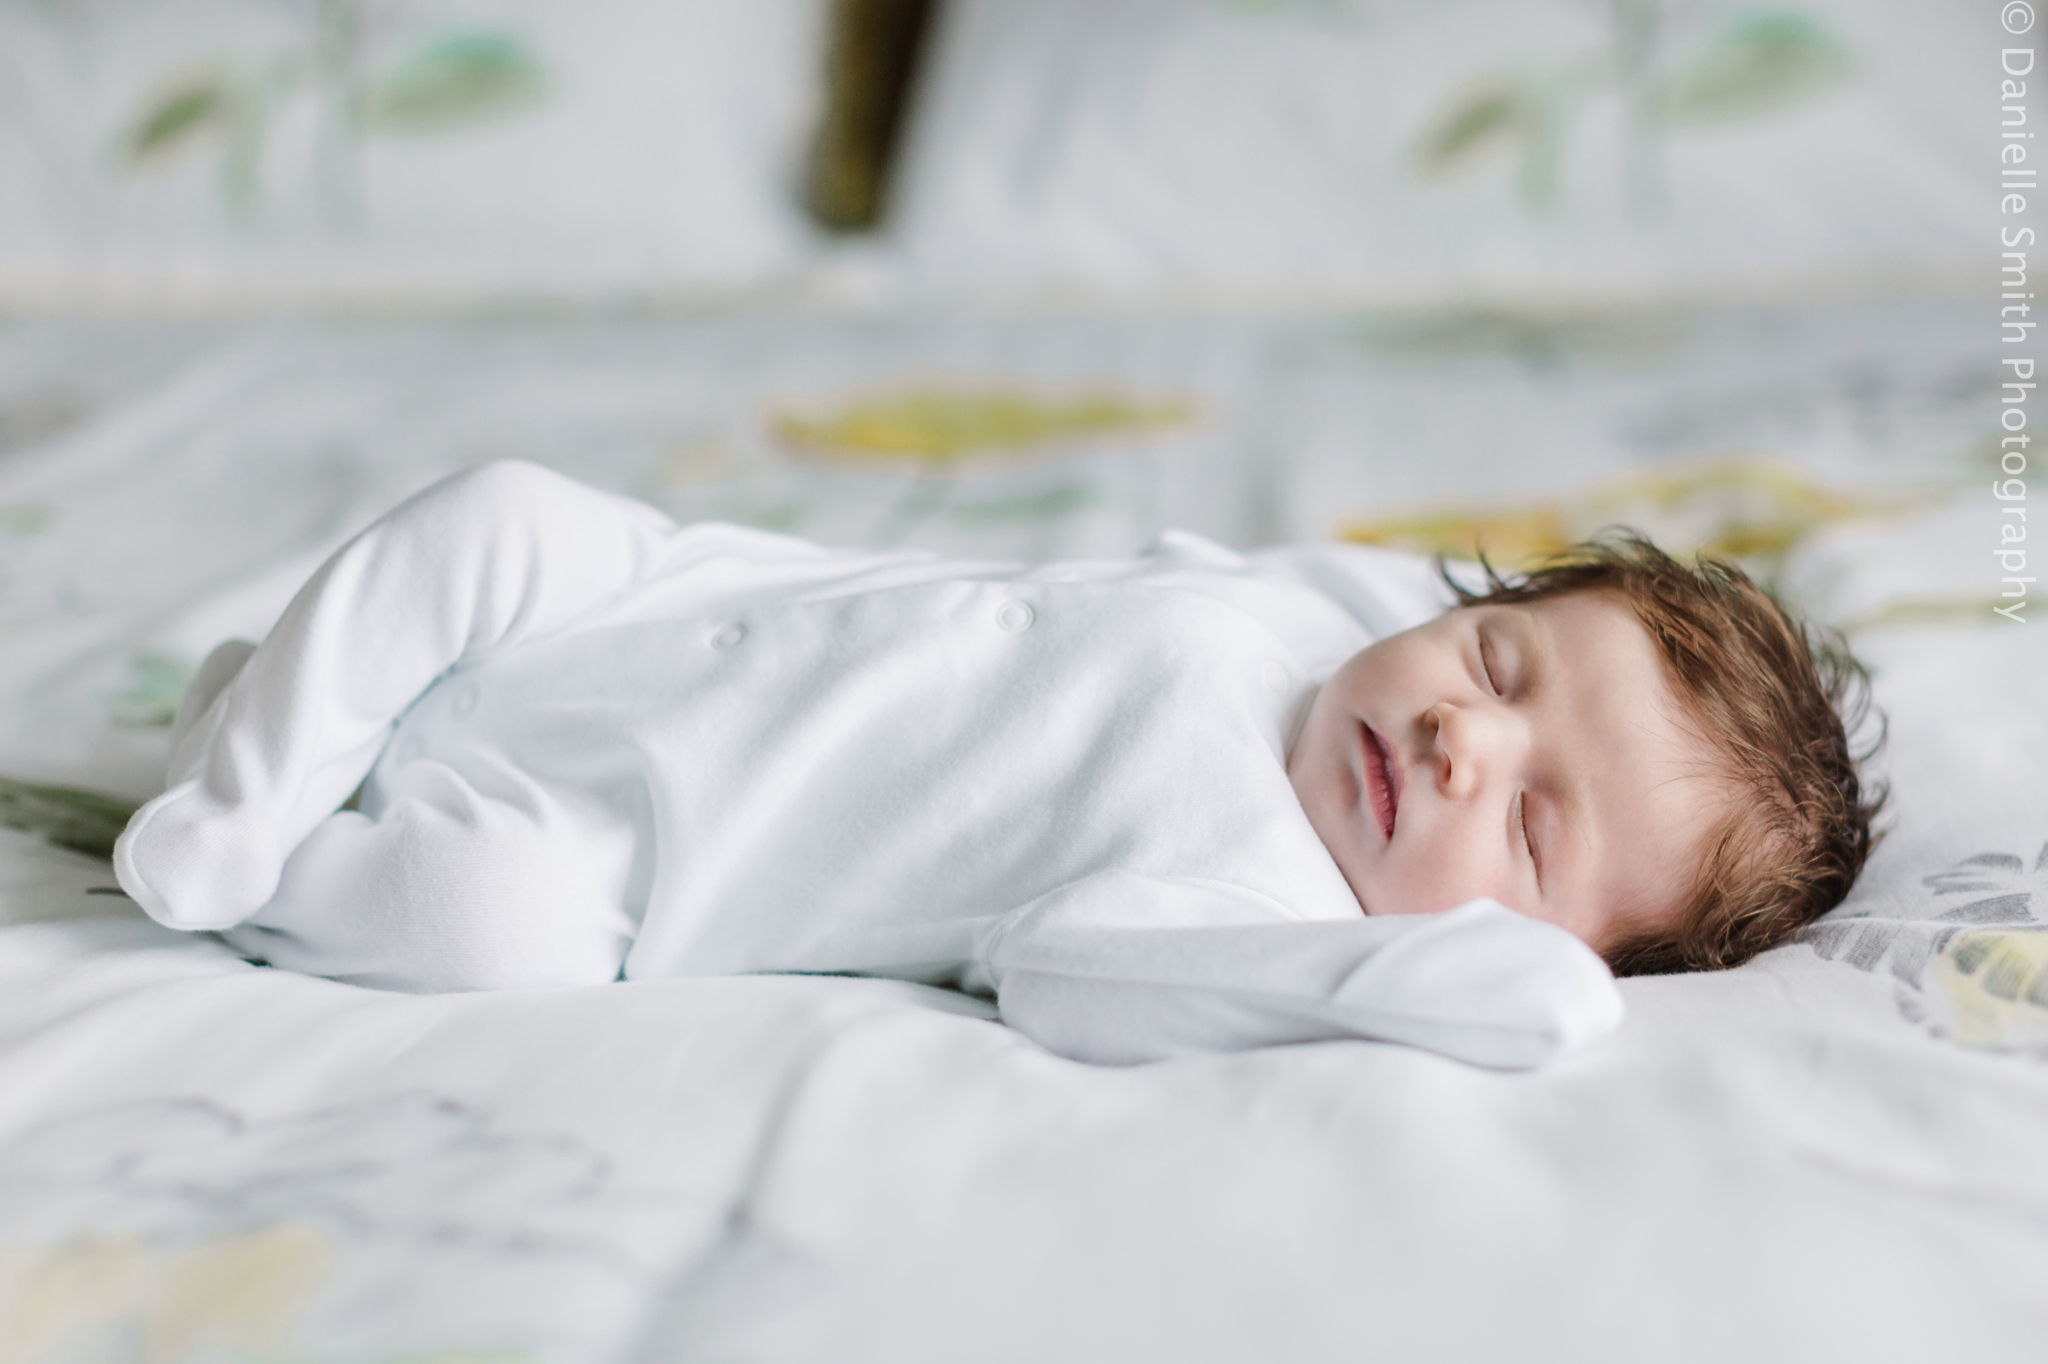 newborn baby sleeping on bed - Relaxed Newborn Baby Photography in South London